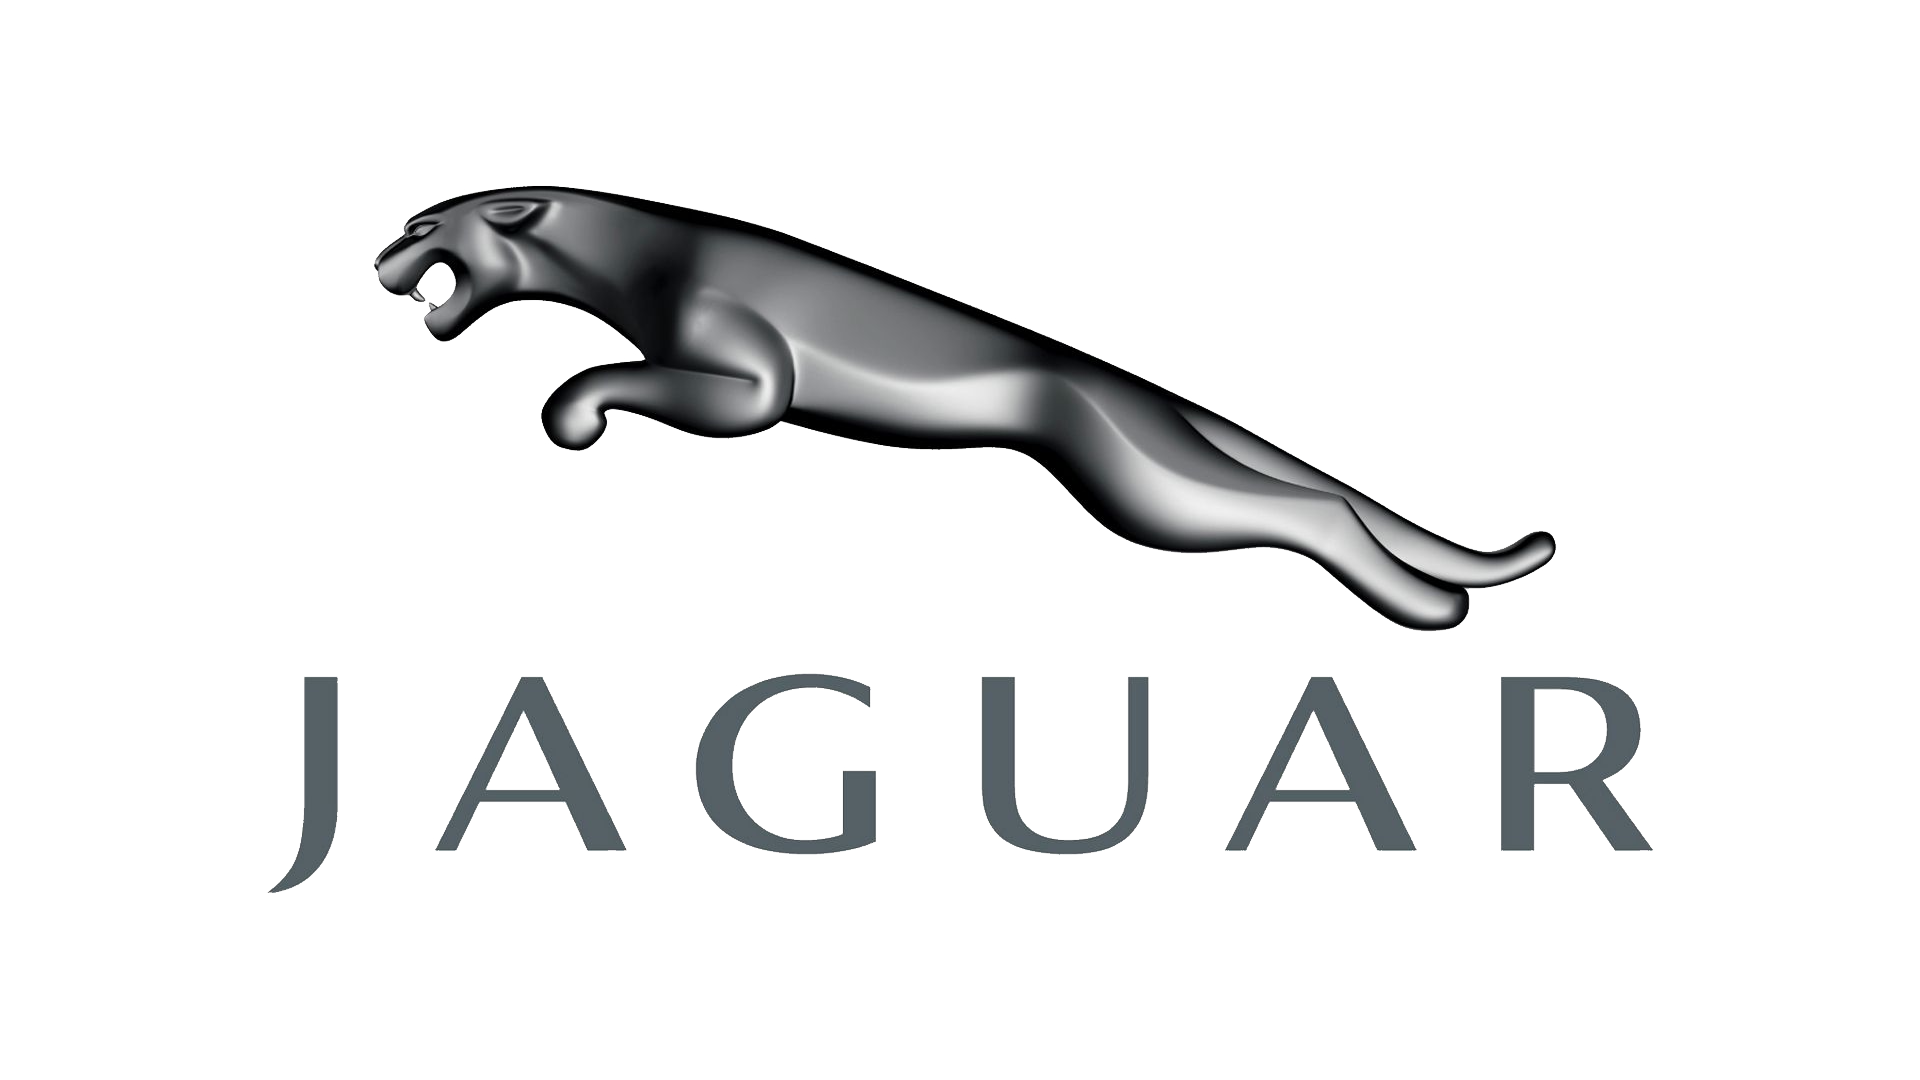 1920x1080 (HD Png) - Jaguar HD PNG